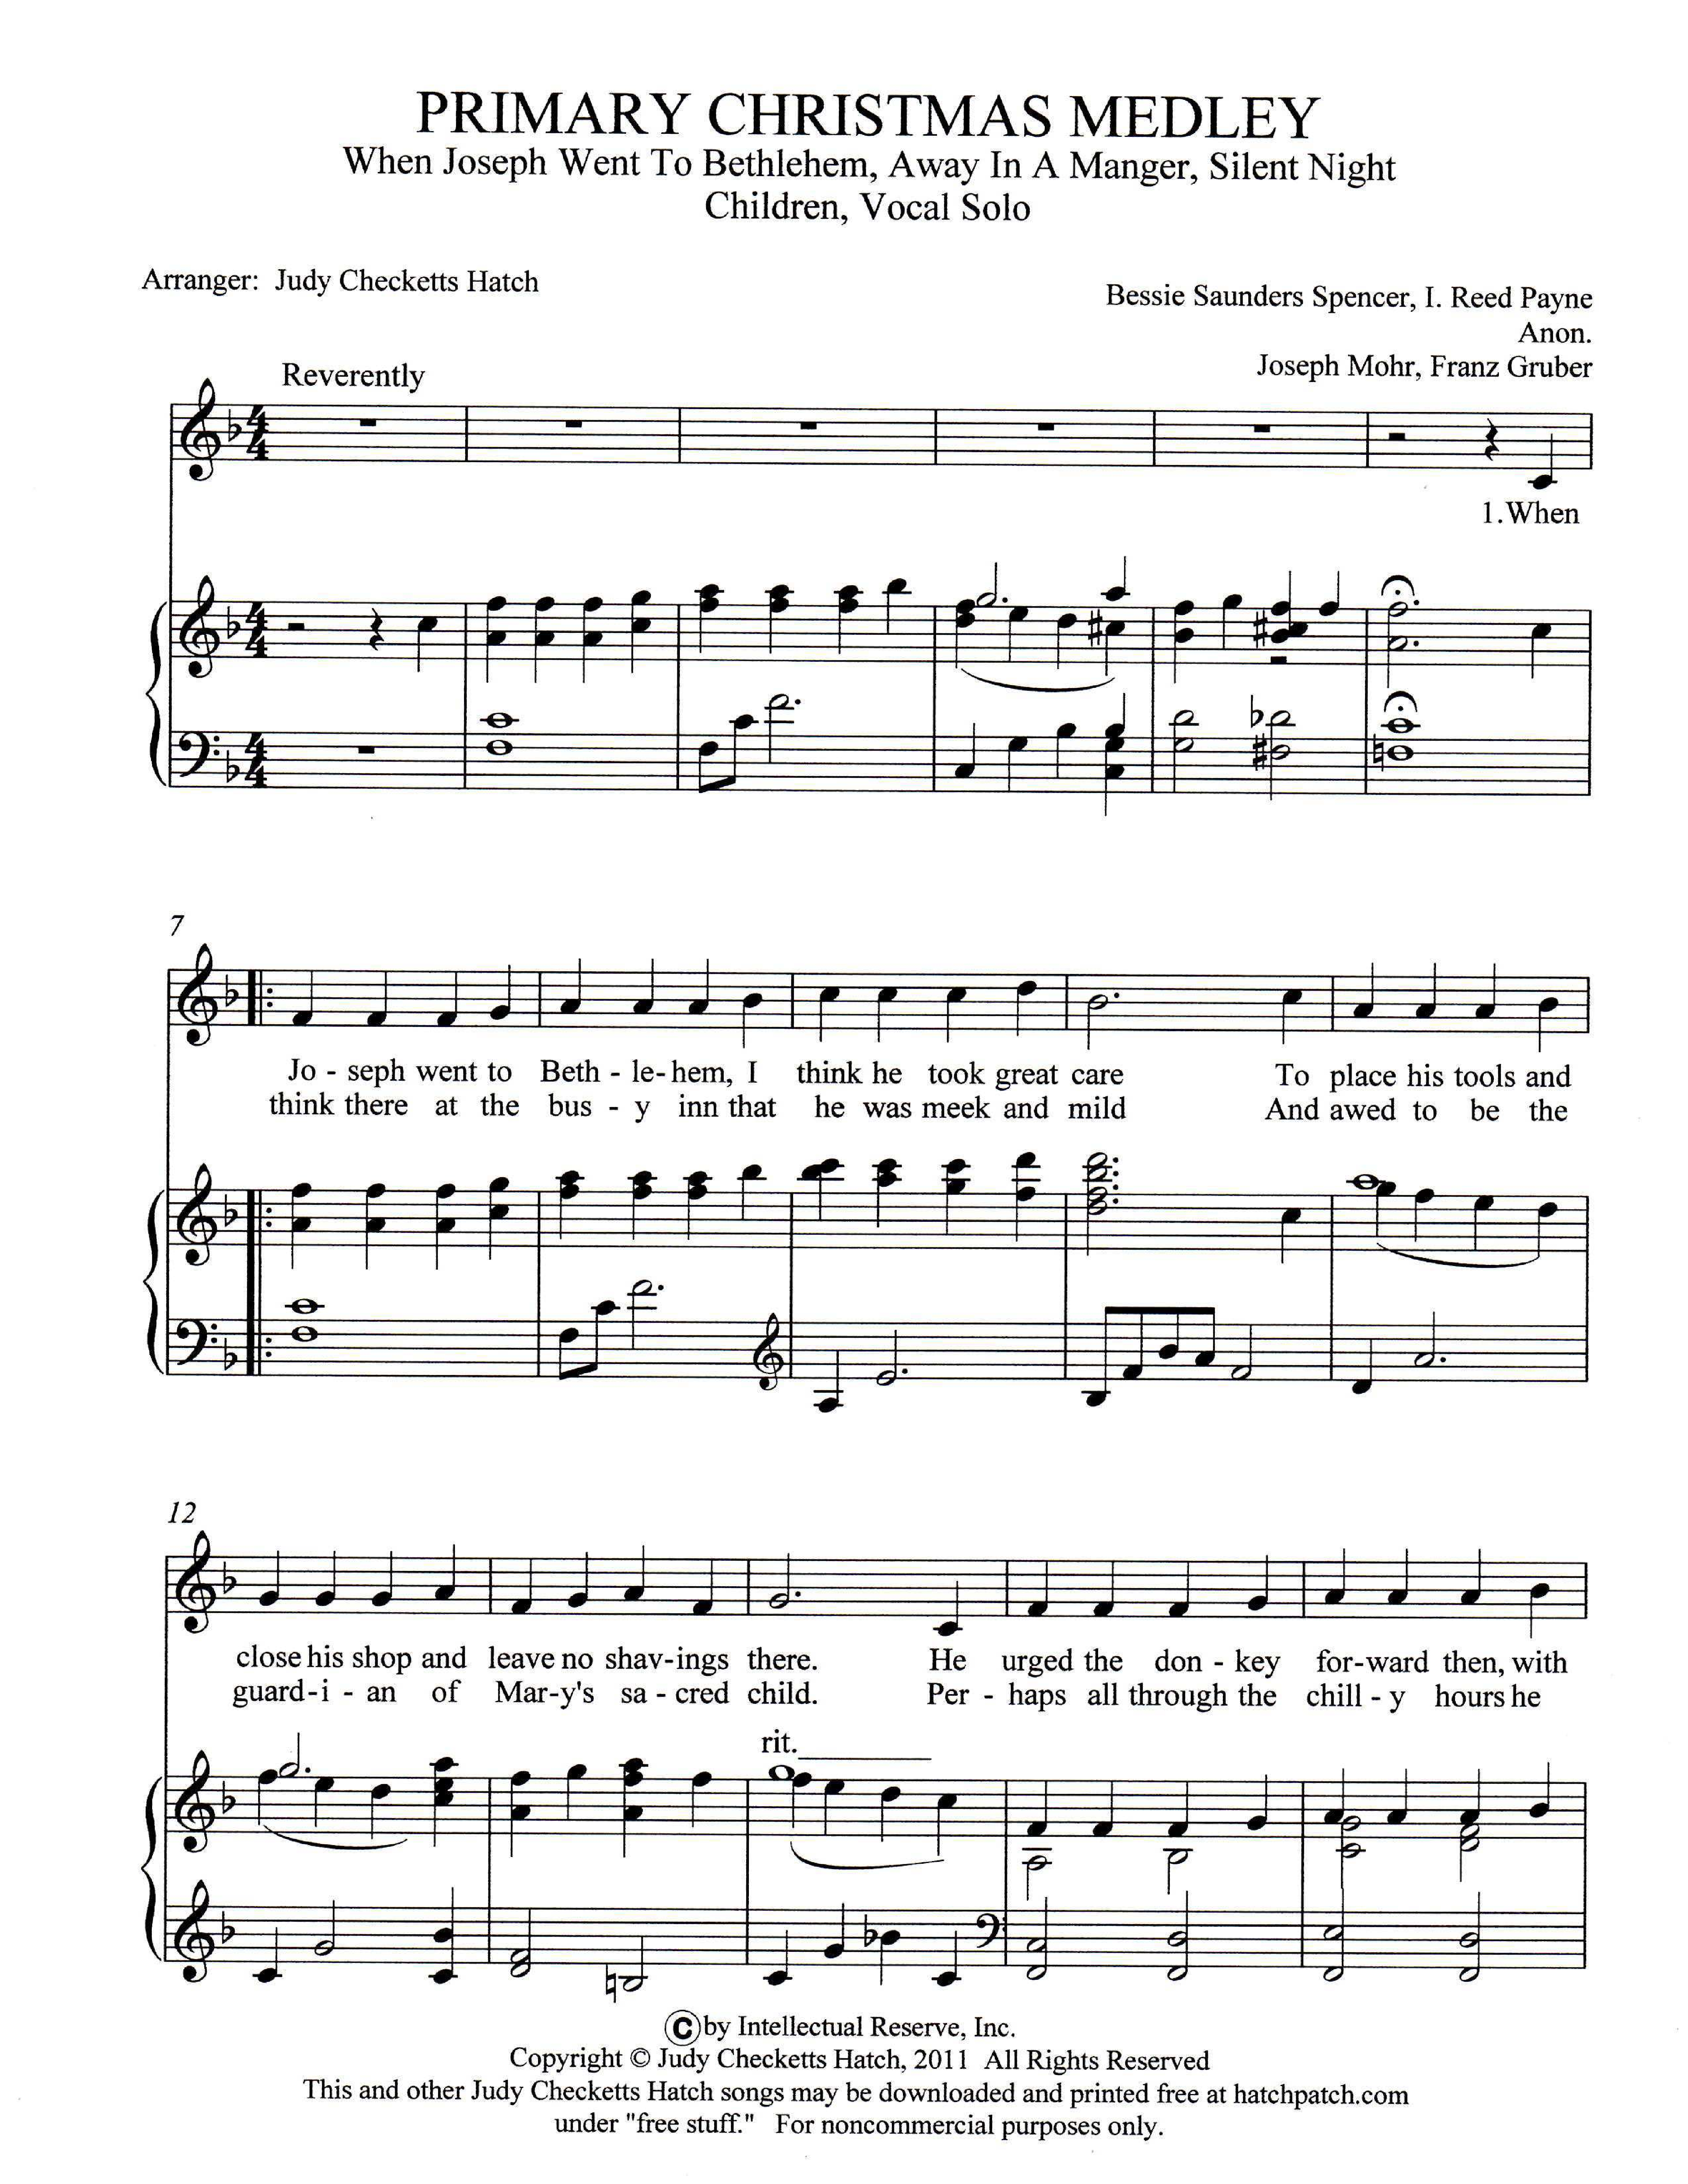 sheet_music_picture - Christmas Medley Lyrics